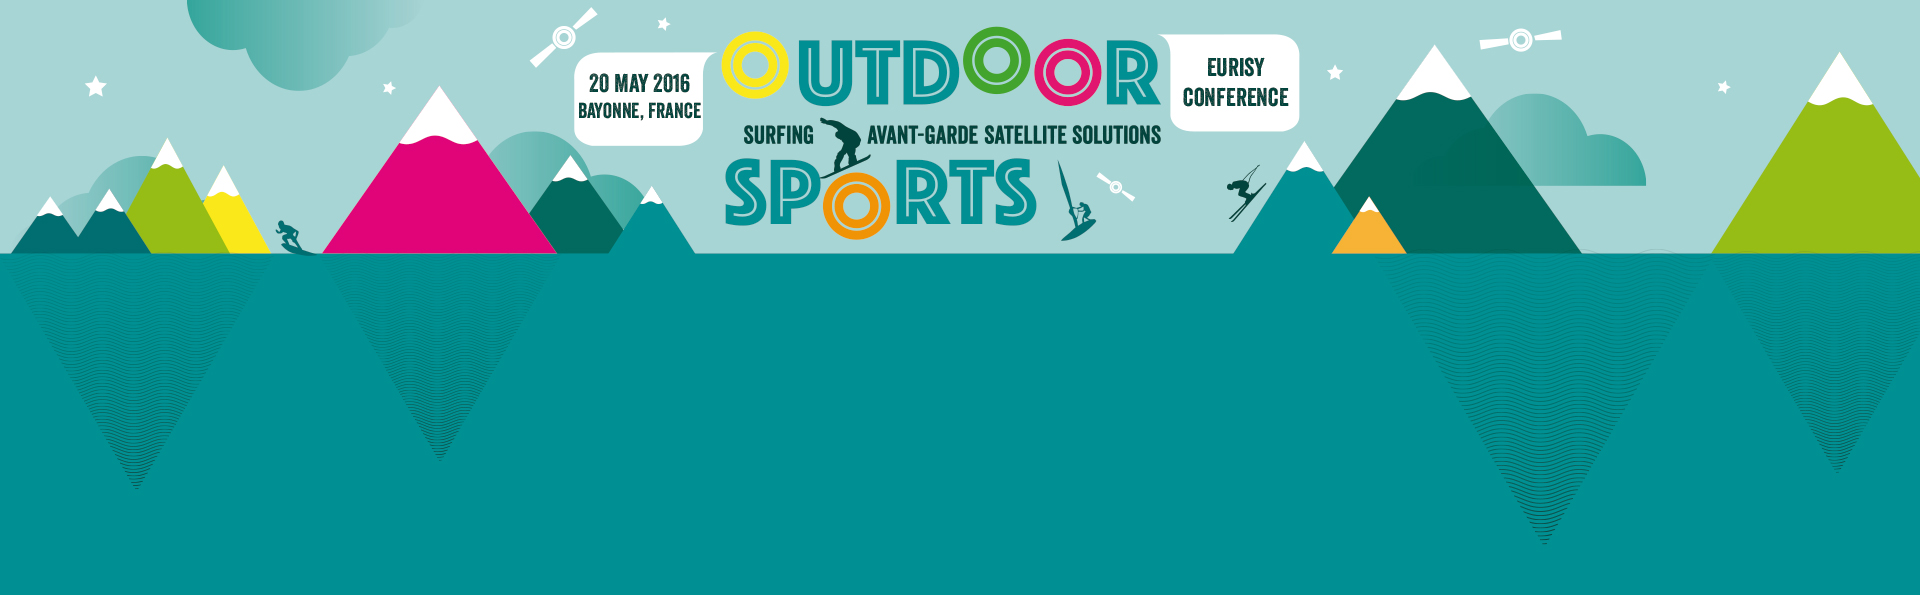 Outdoor sports: surfing avant-garde satellite solutions